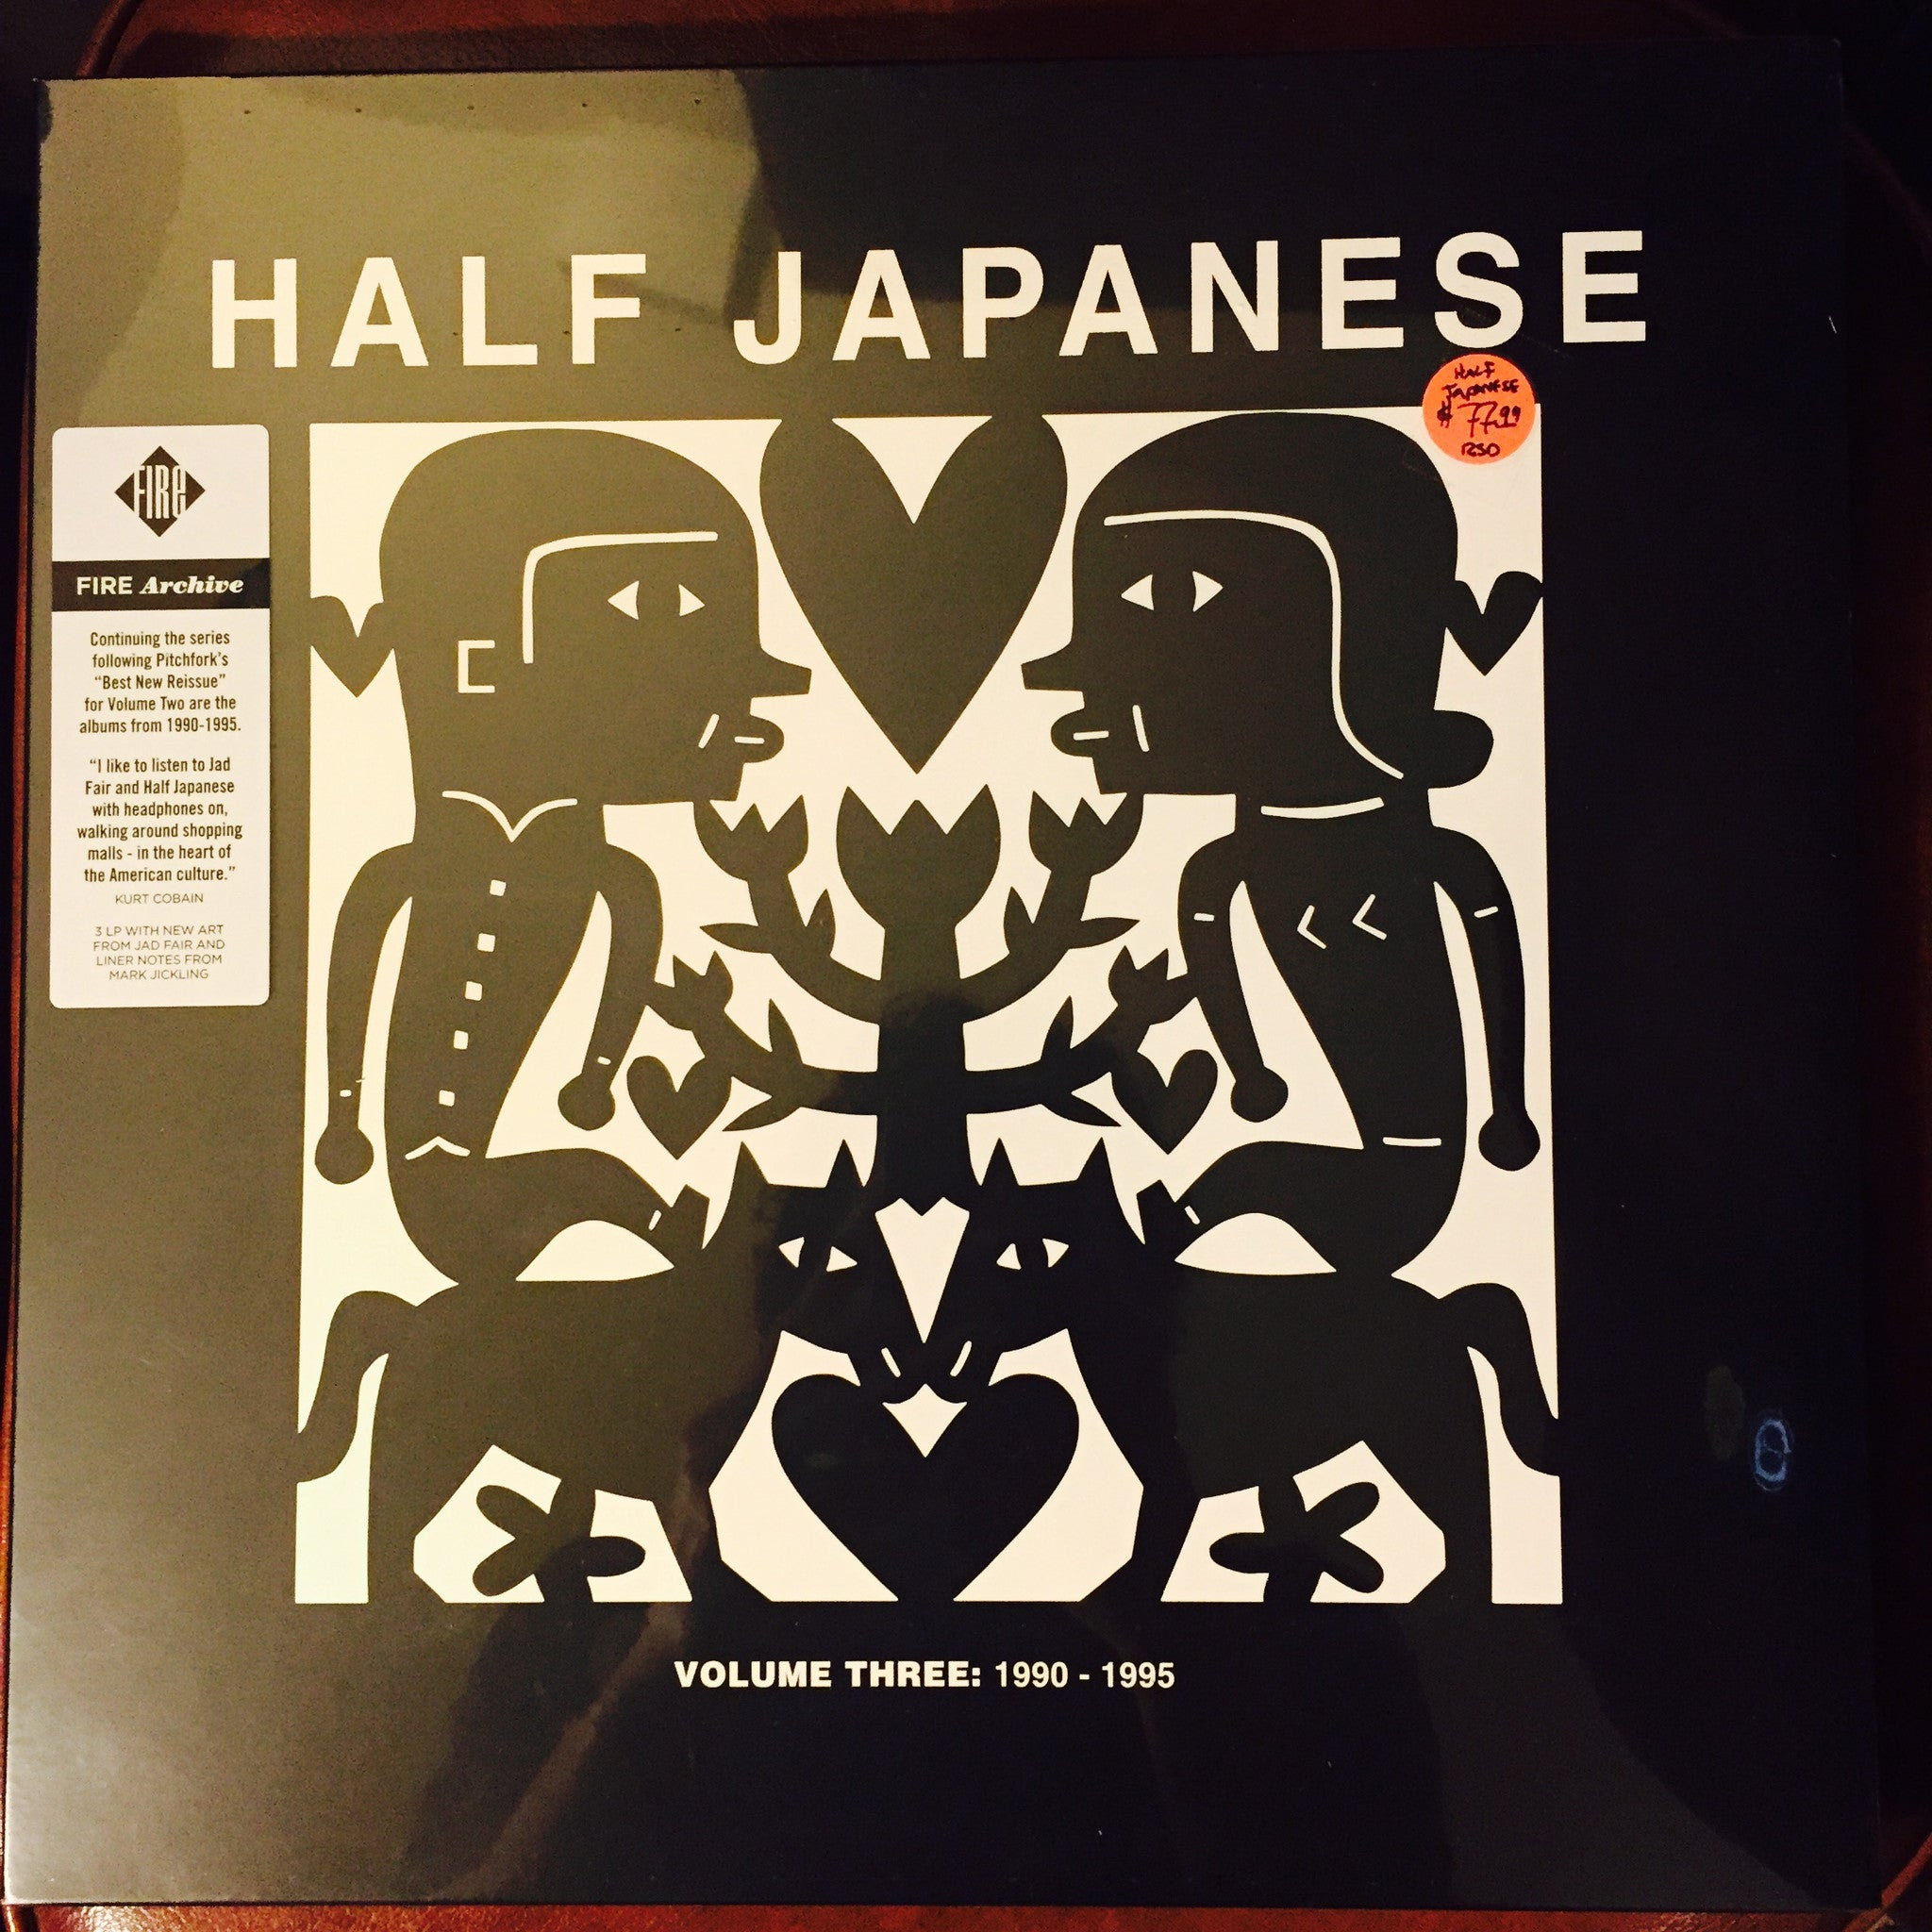 Half Japanese - Volume Three: 1990-1995 3xLP - RSD 2015 NEW/SEALED